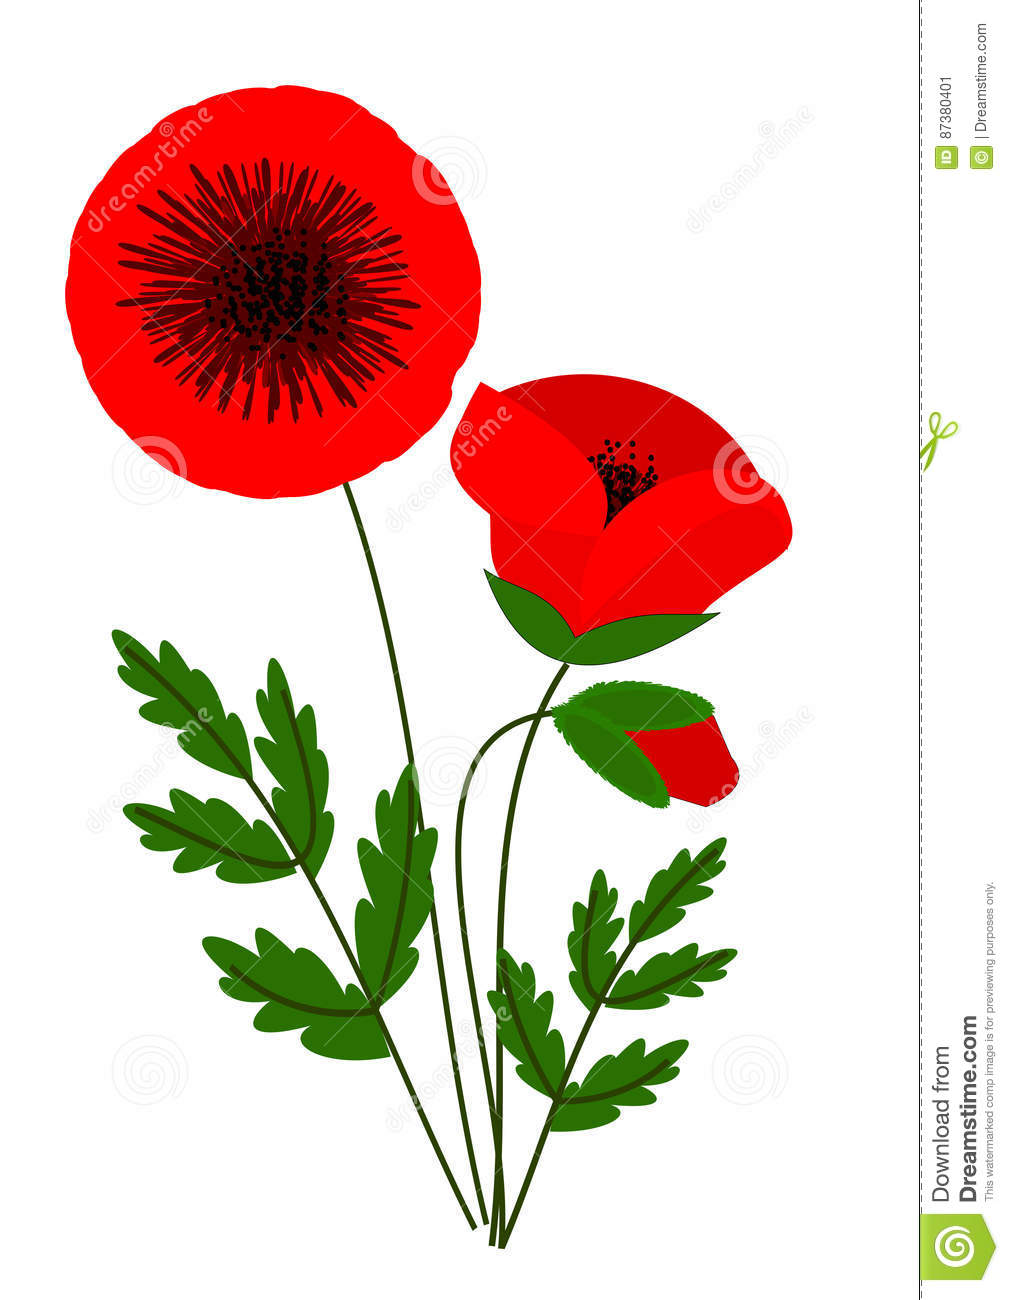 Poppies stock illustration illustration of weeds flowers 87380401 download comp mightylinksfo